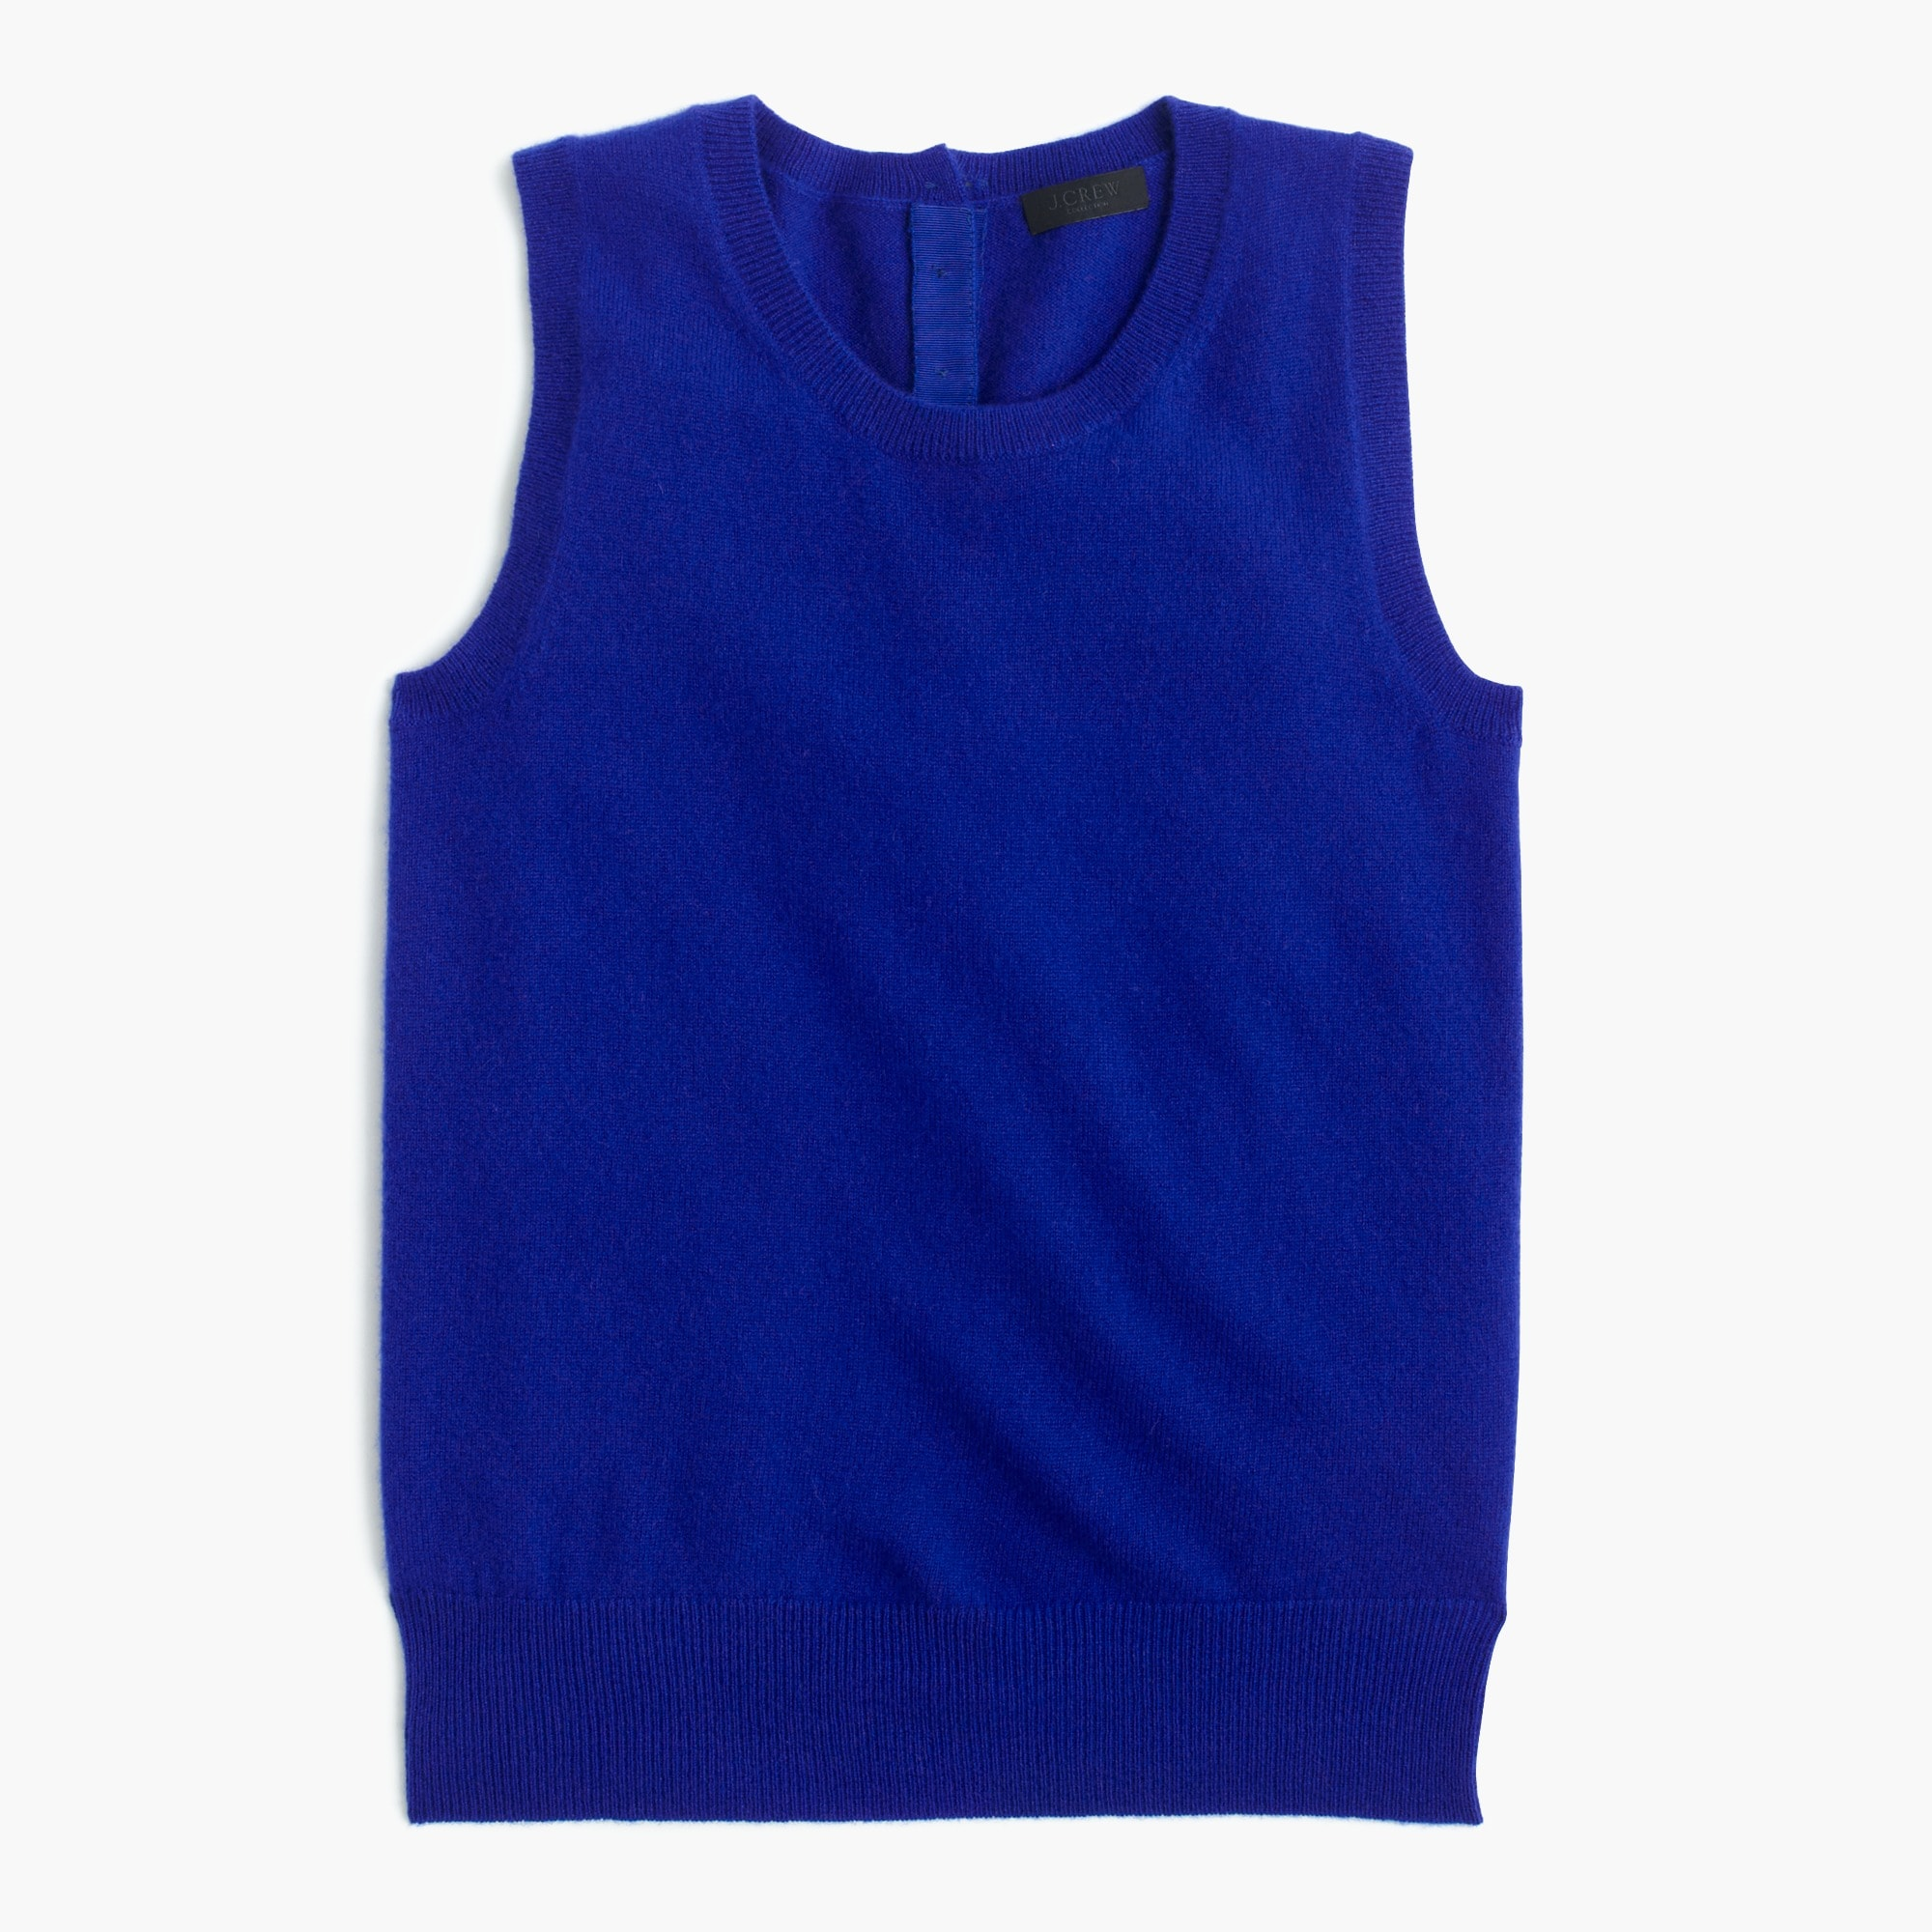 Italian cashmere shell top